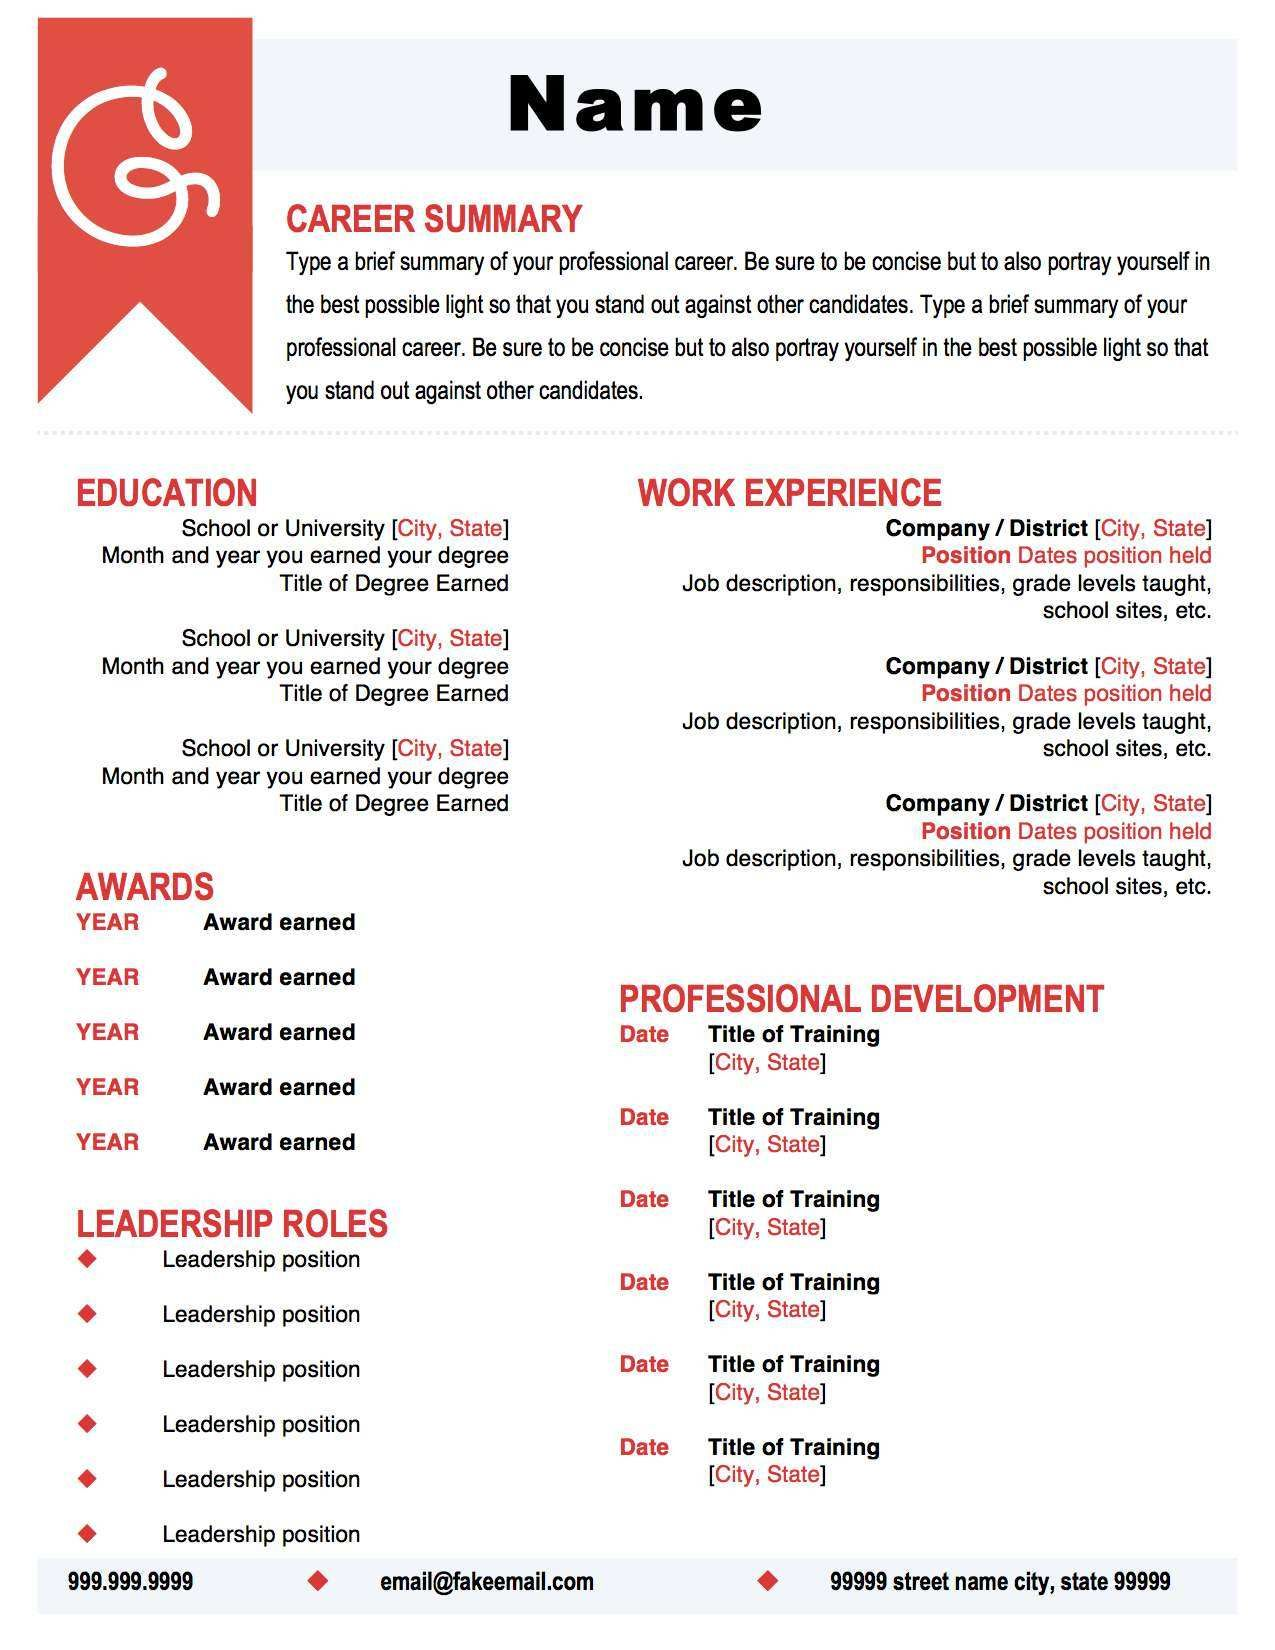 How To Create A Resume Template Coral And Black Resume Template Make Your Resume Pop With This